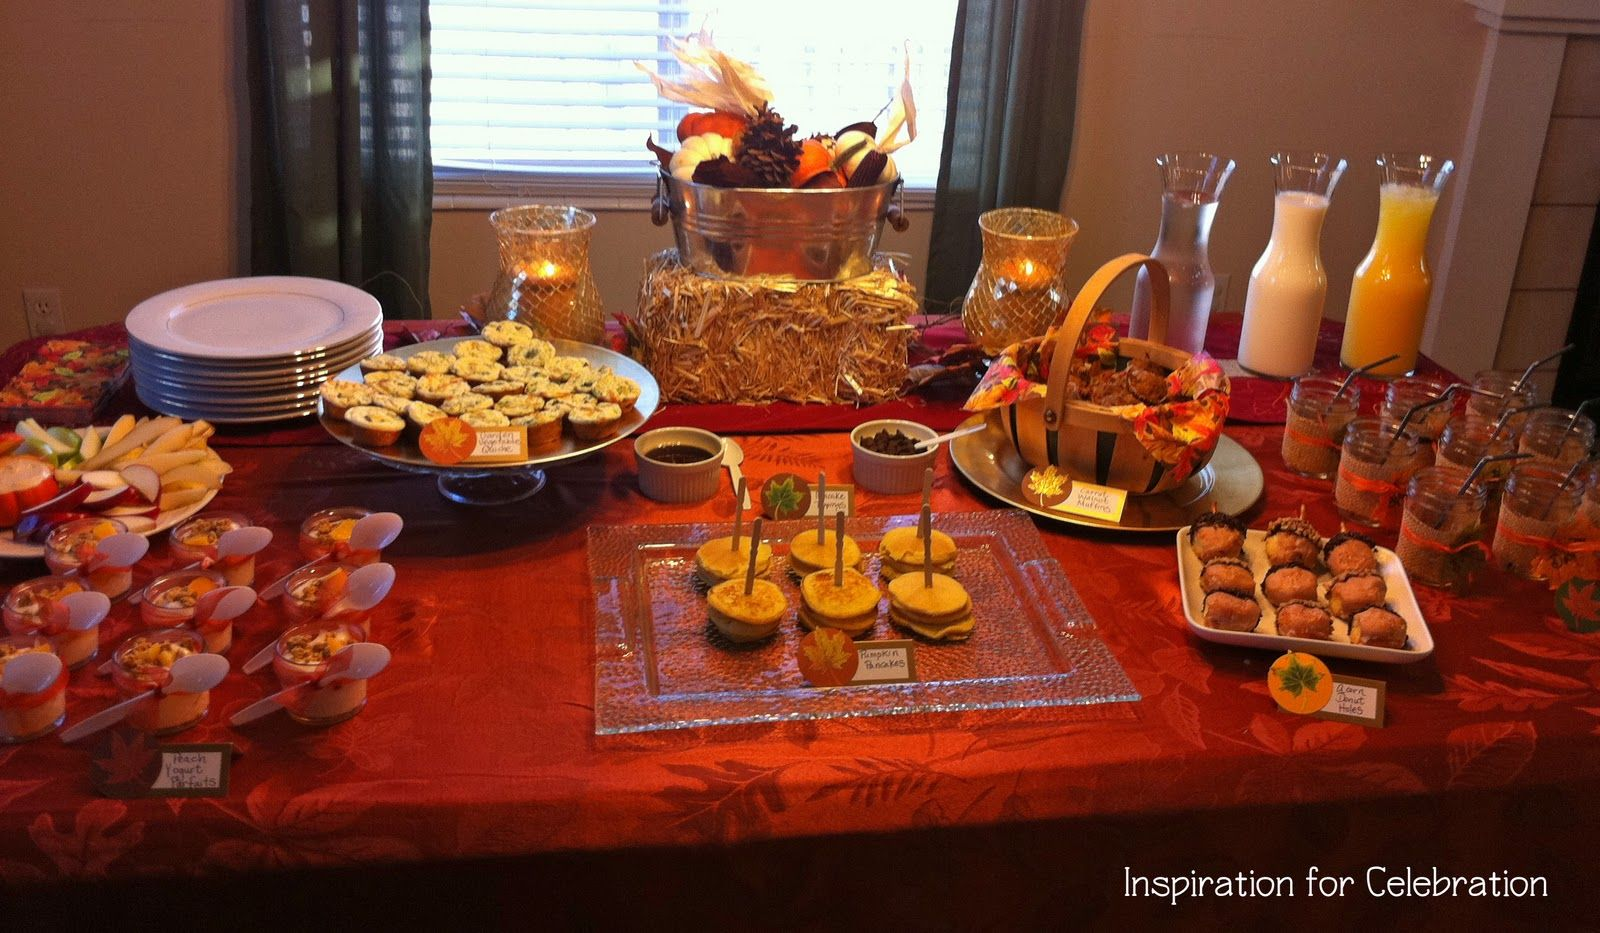 Church banquet ideas the spread for the food i wanted Brunch table decorations